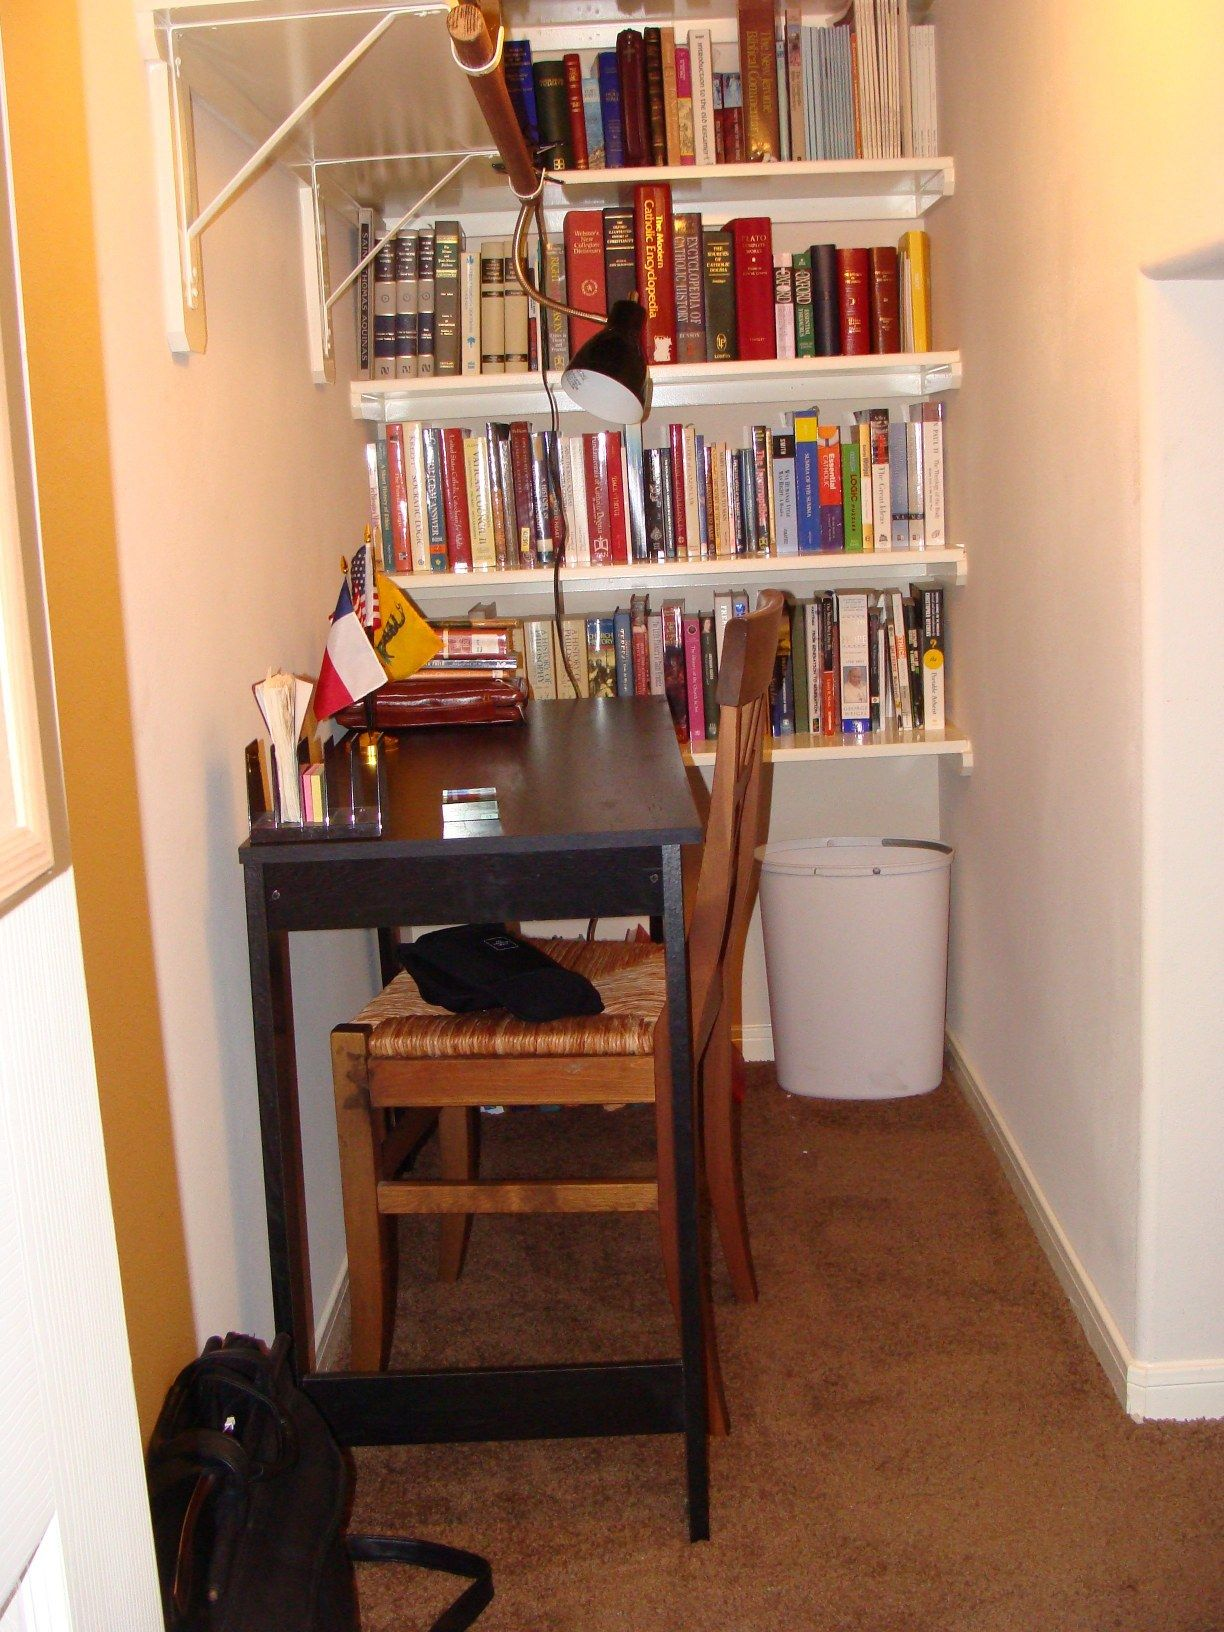 Basement Study Room: This Is The Under-stairs Closet After I Converted It Into